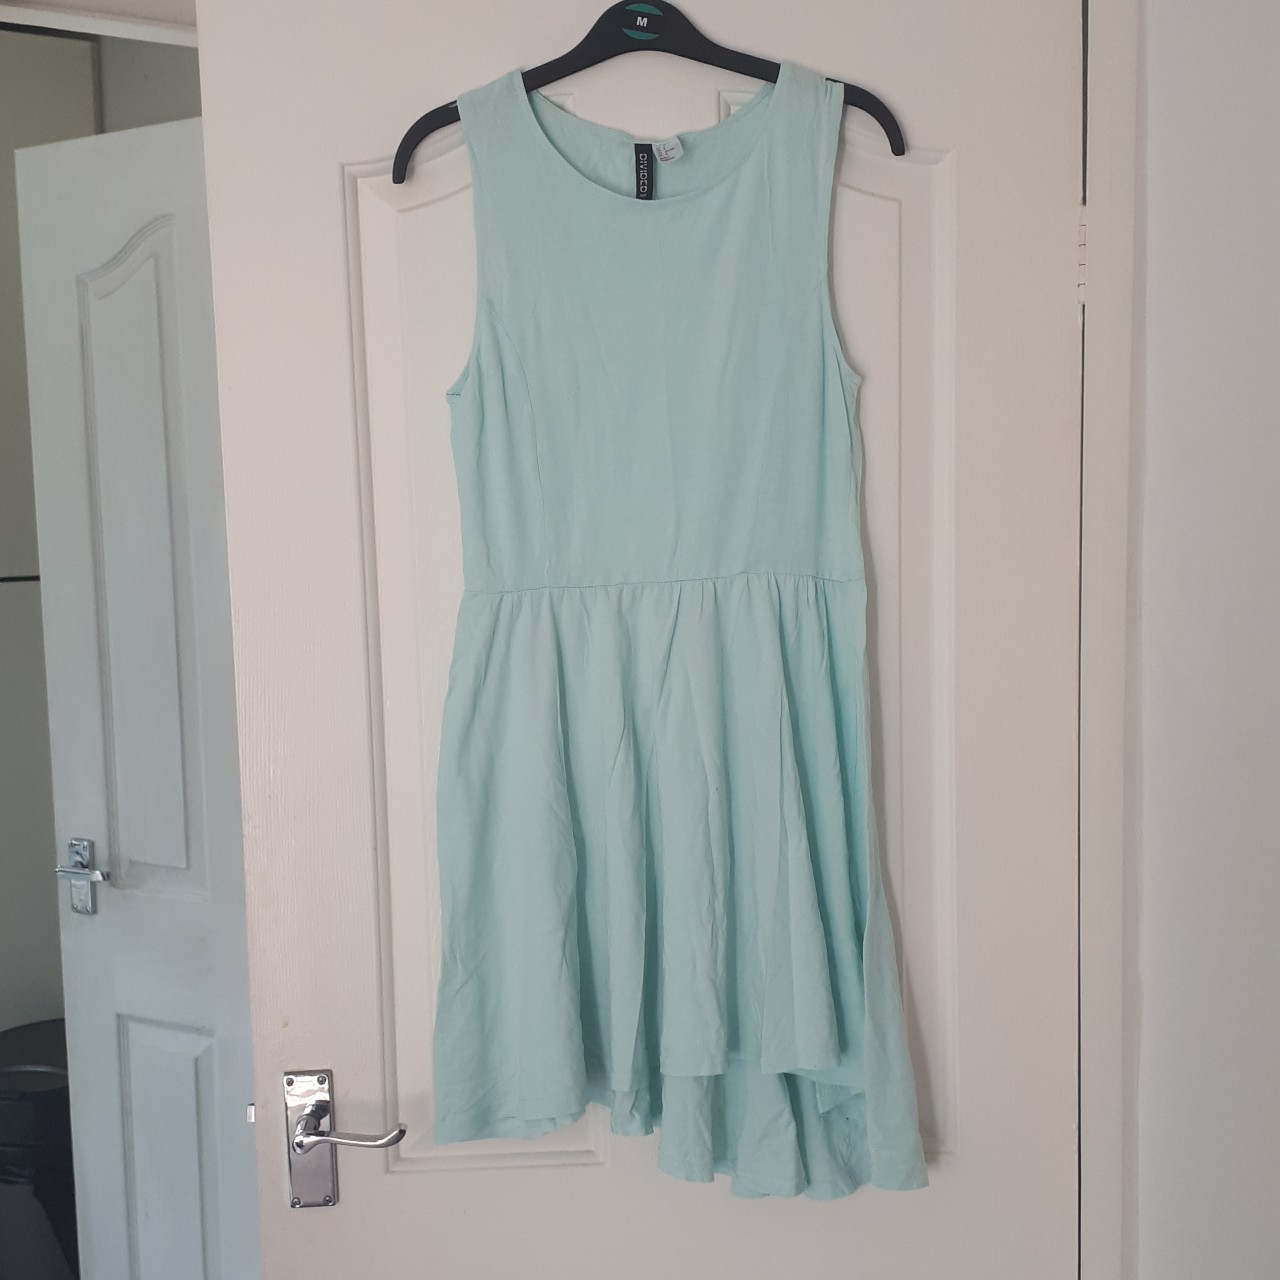 Mint green Divided H&M summer dress with angled Depop